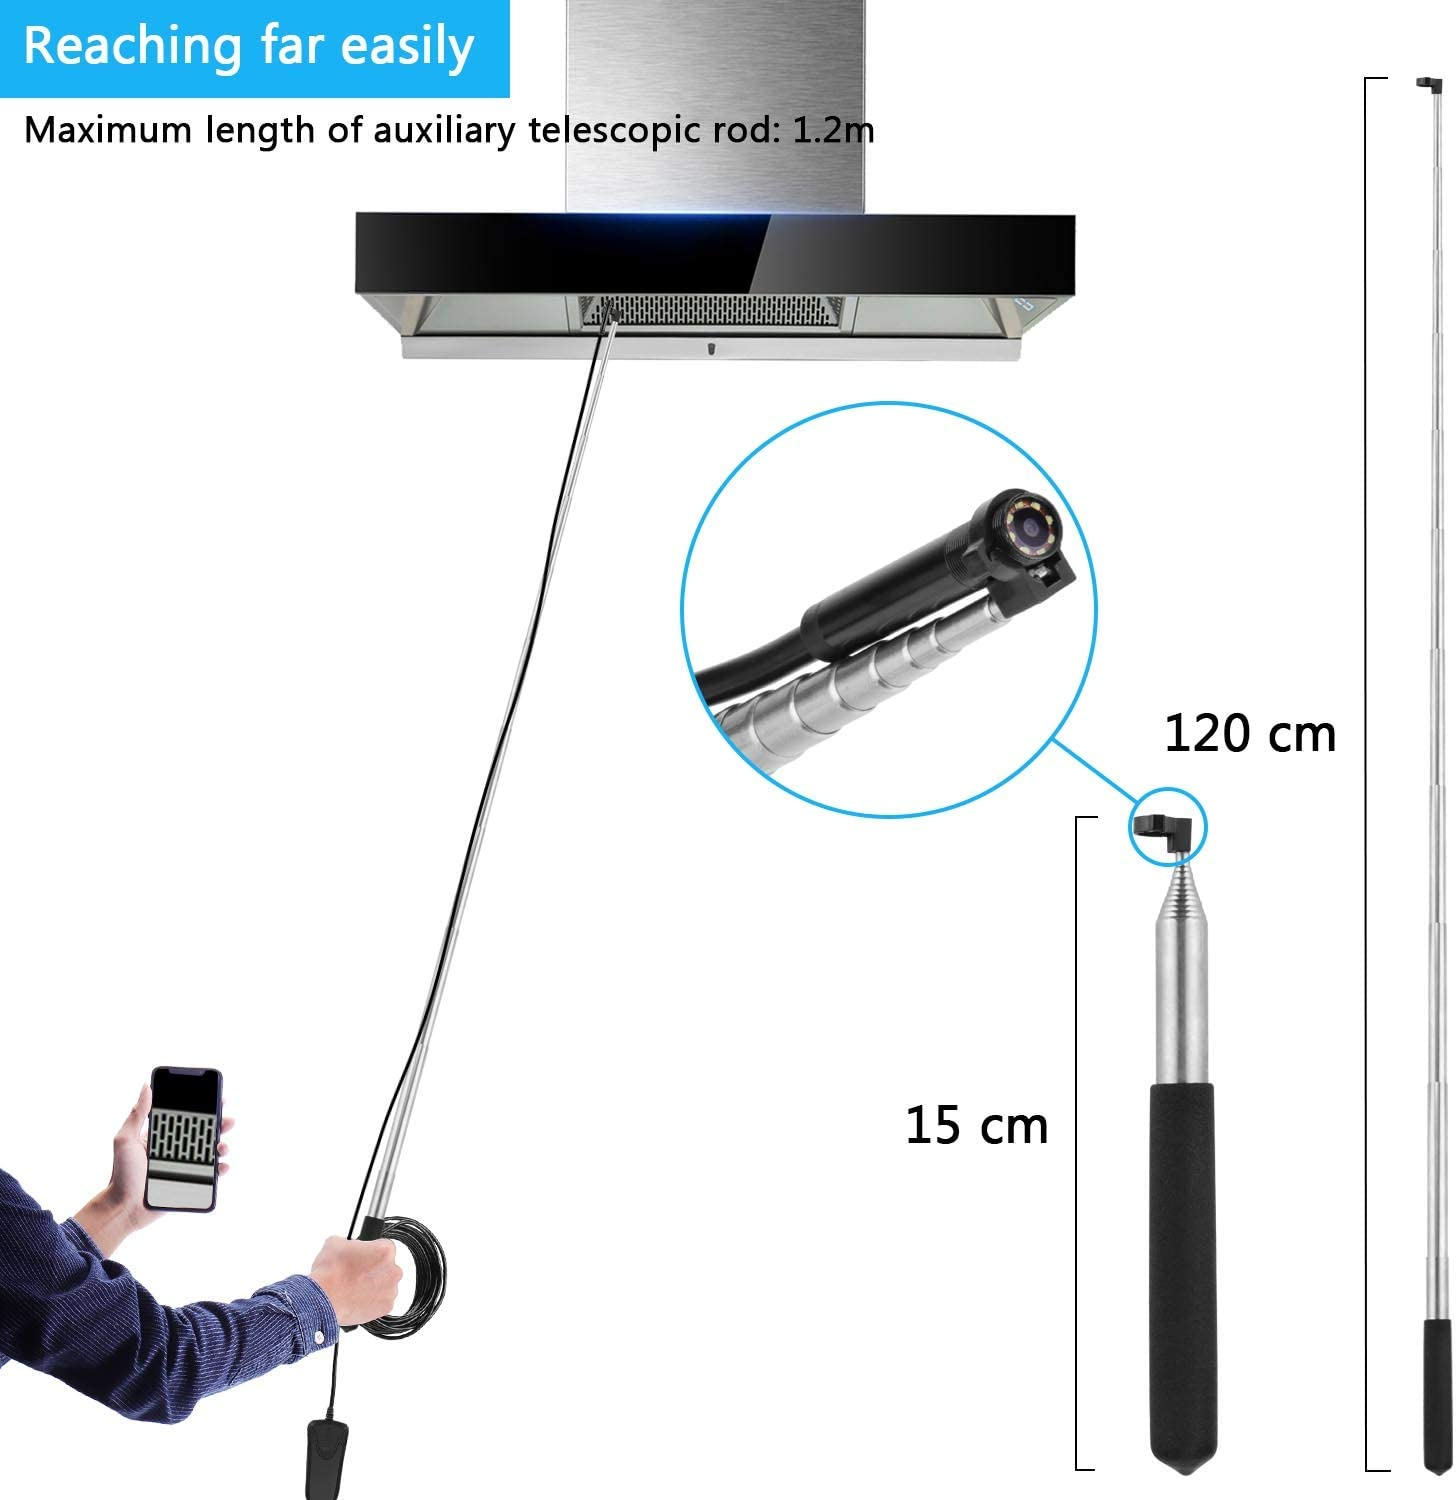 PEYOU 10M Wifi Inspection Camera Compatible for iPhone and Android Phones,Wireless Endoscope Camera With Telescopic Rod 1080P HD Snake Camera With 8 led Light Waterproof IP68 Borescope for Tab